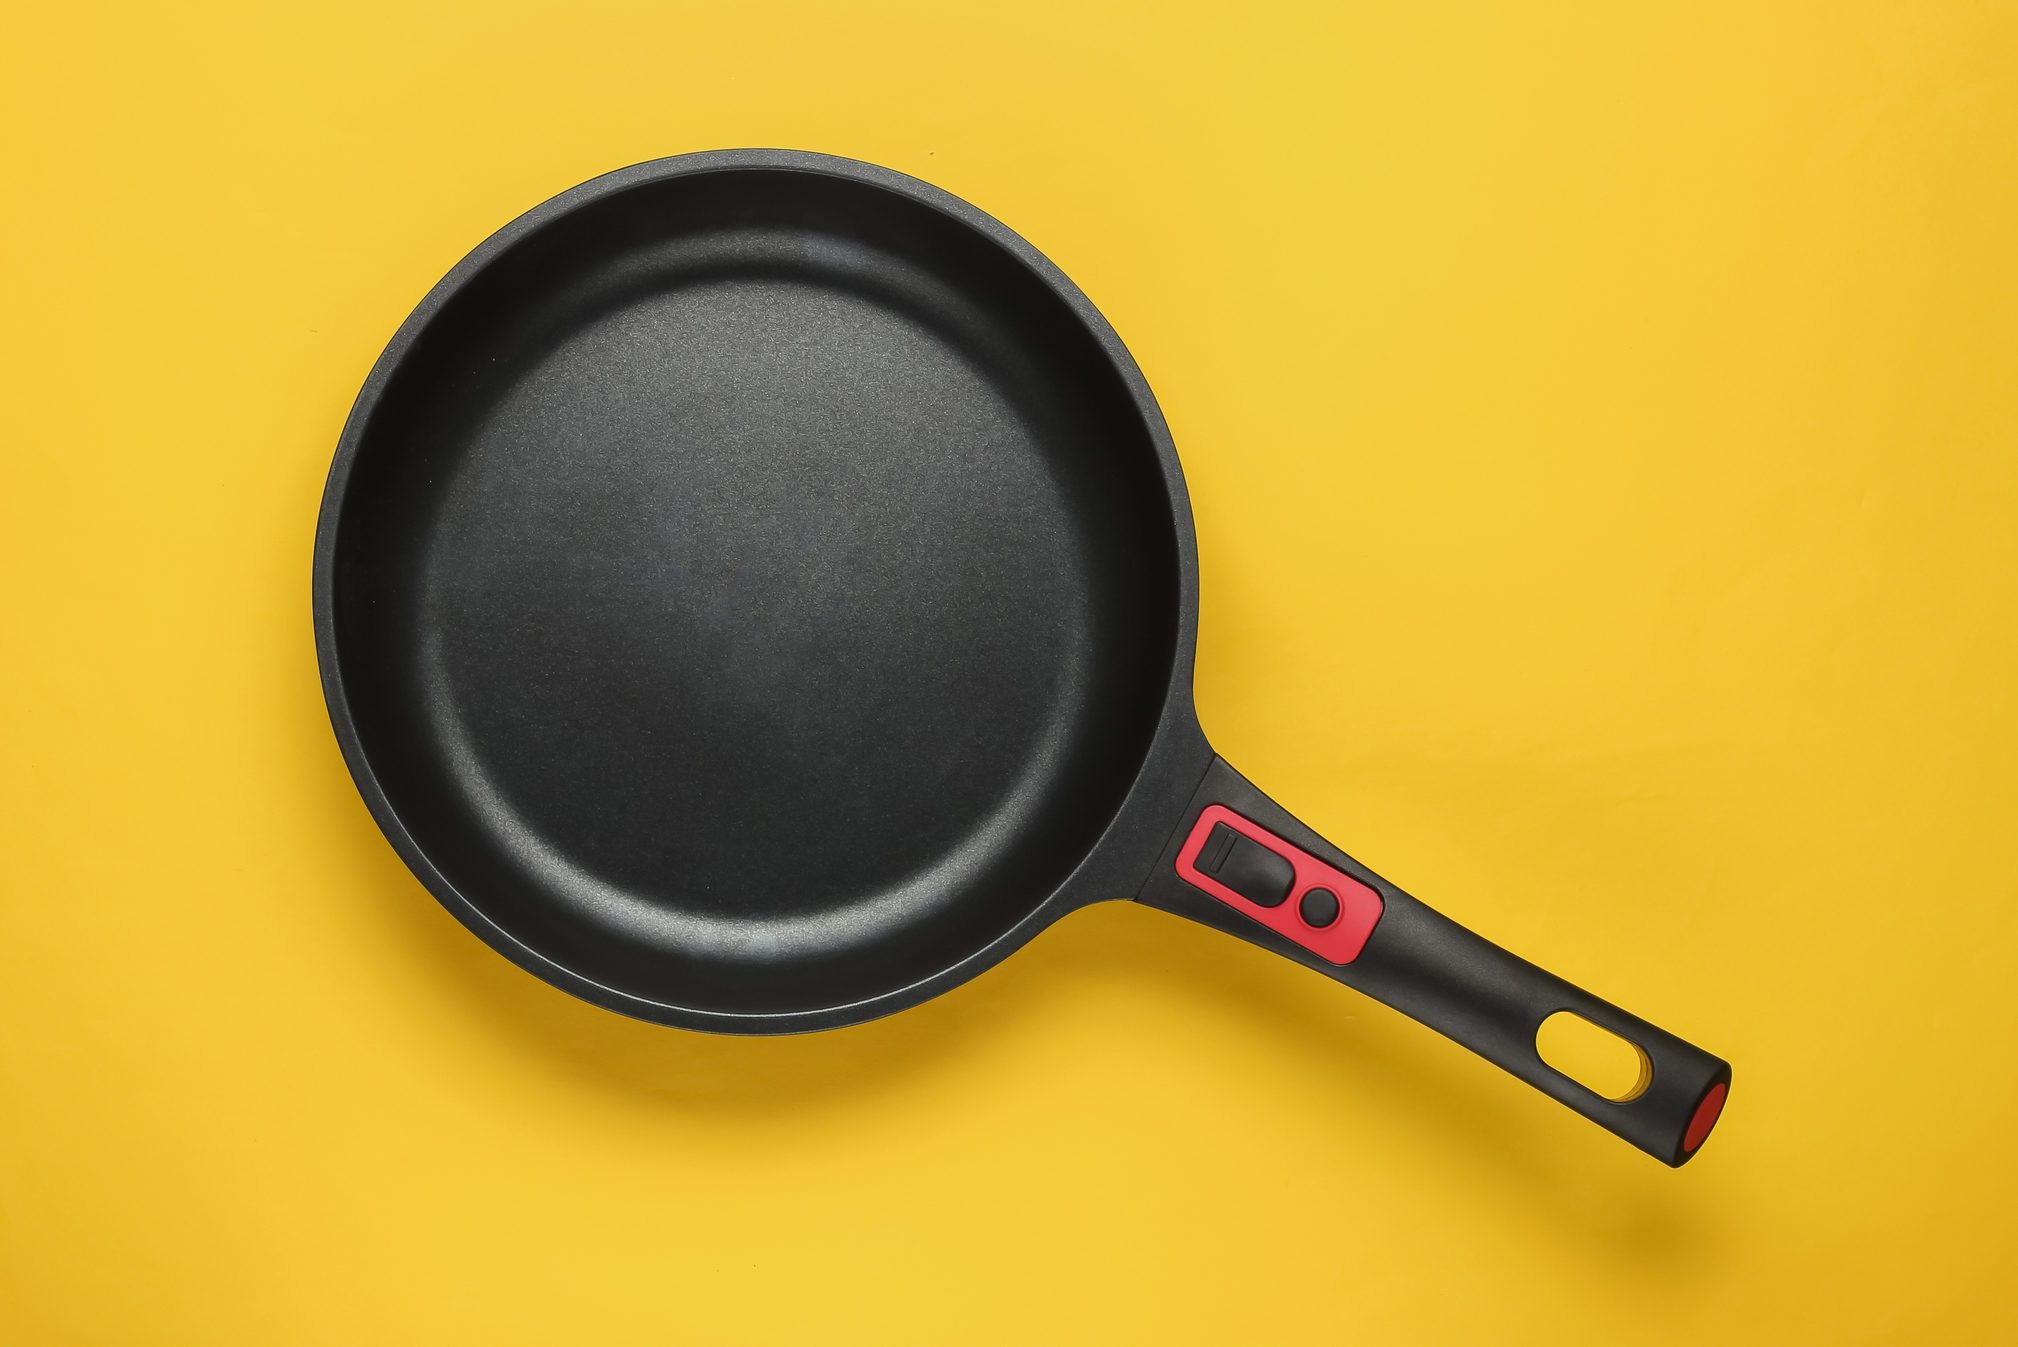 Frying pan with a non-stick coating on yellow background. Cooking minimalism concept. Top view